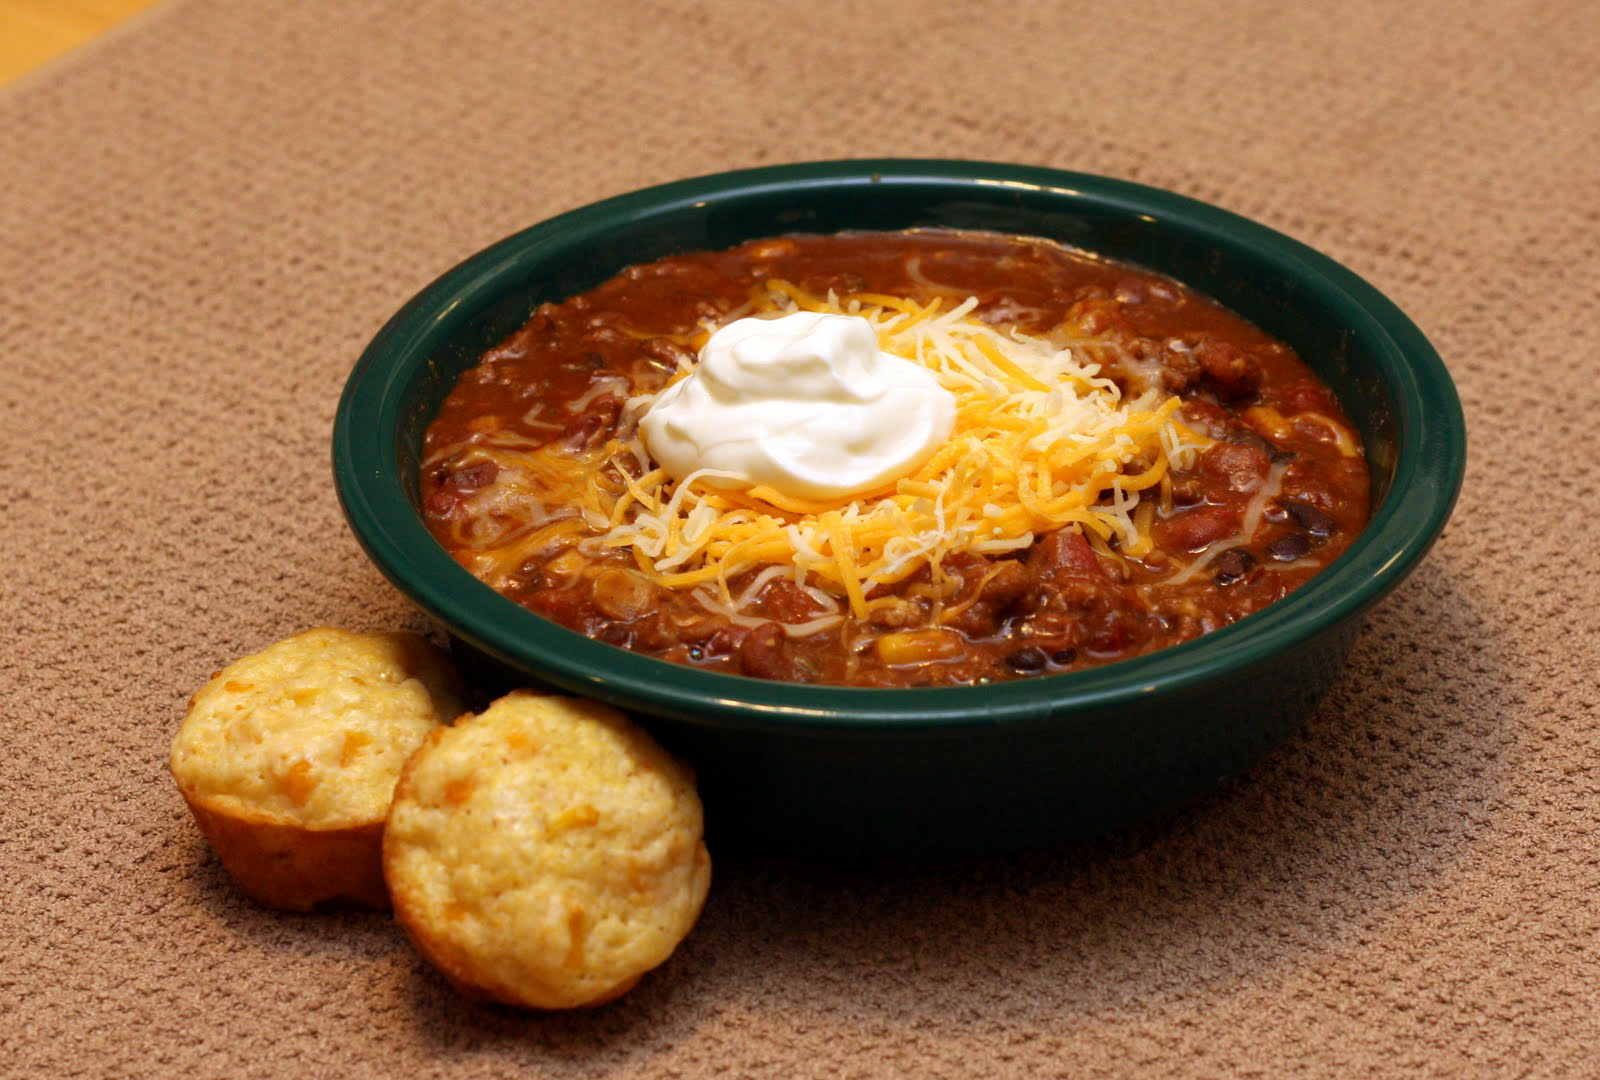 this chili reminds me of the chili that i used to get in the lodge ...